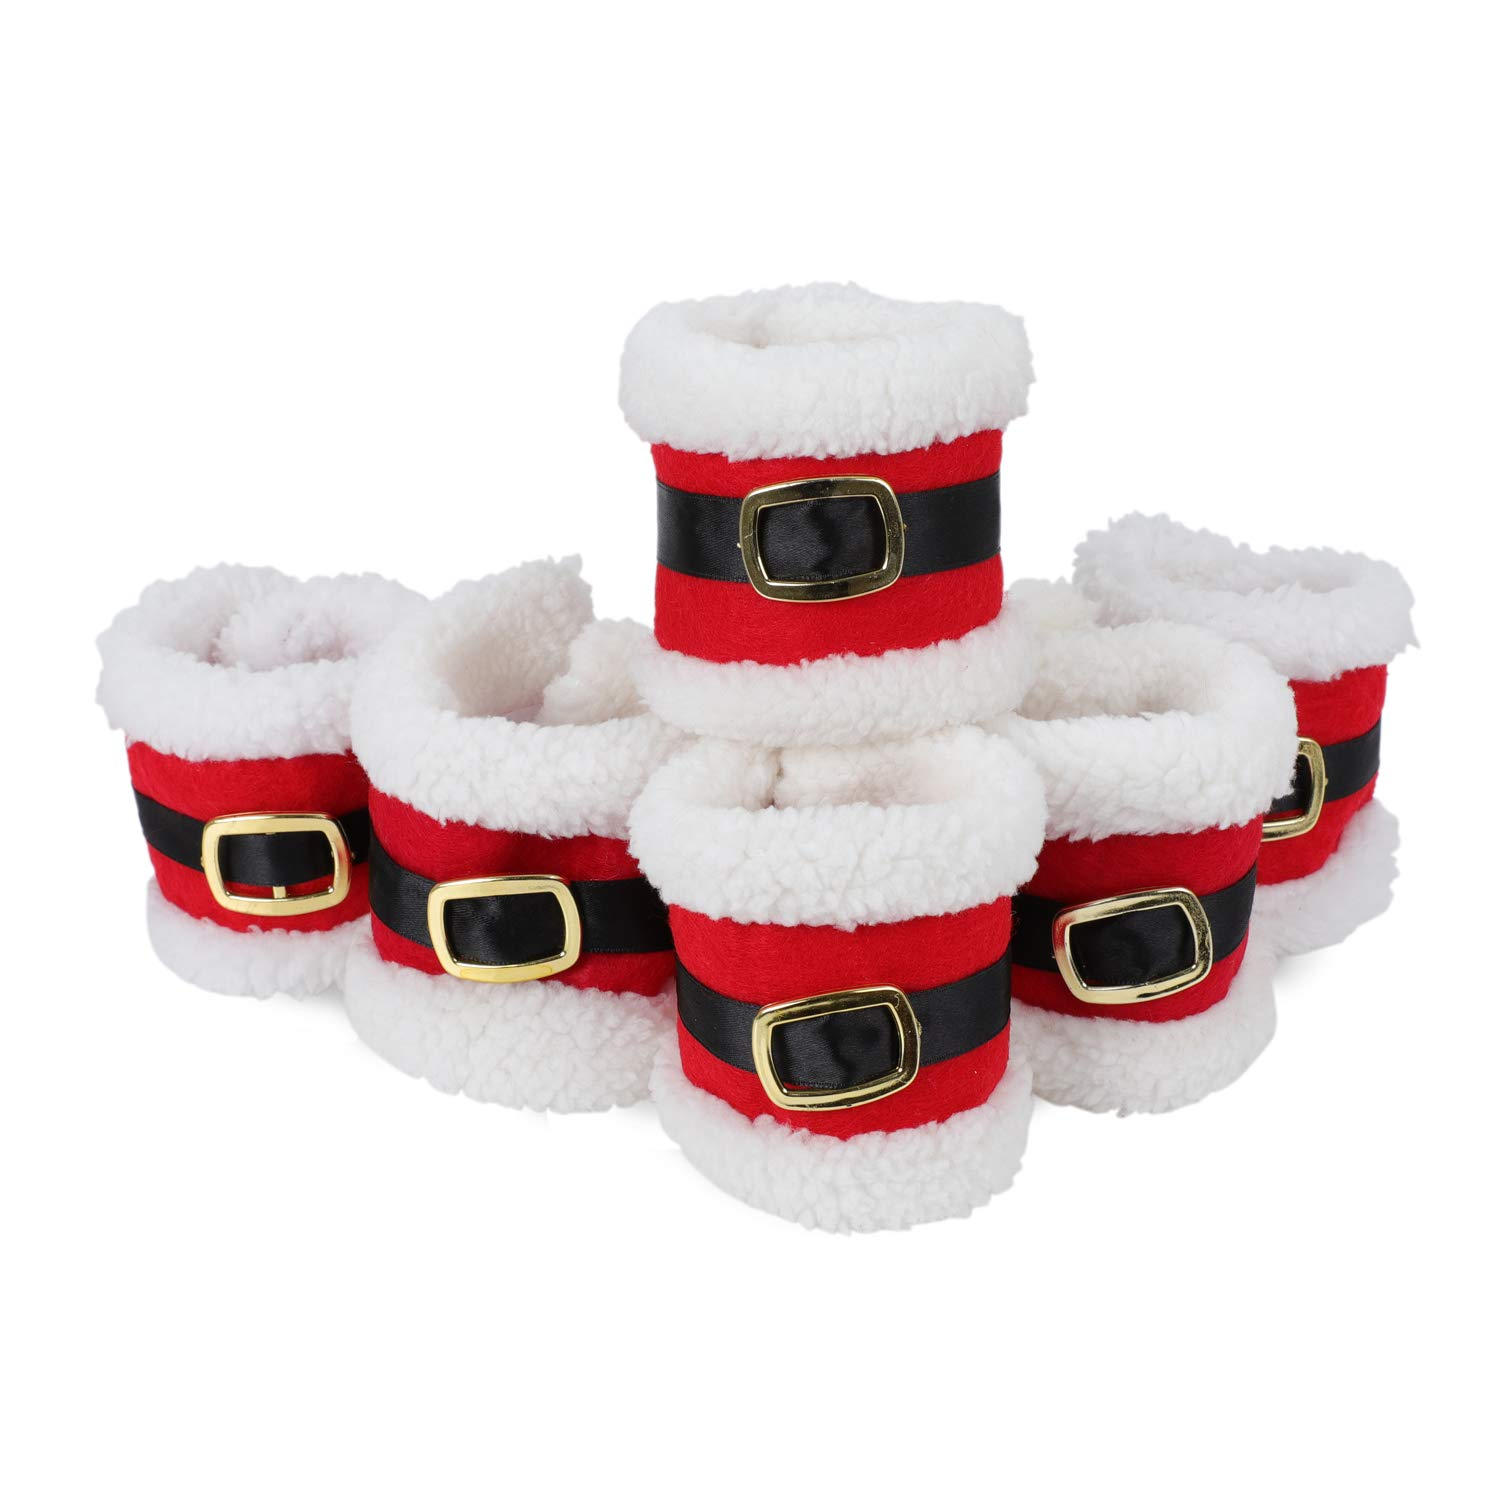 COM4SPORT Christmas Napkin Ring, Set of 6 Christmas Napkin Ring Holders, Christmas Table Decoration, Perfect for Christmas Dinner Party Use